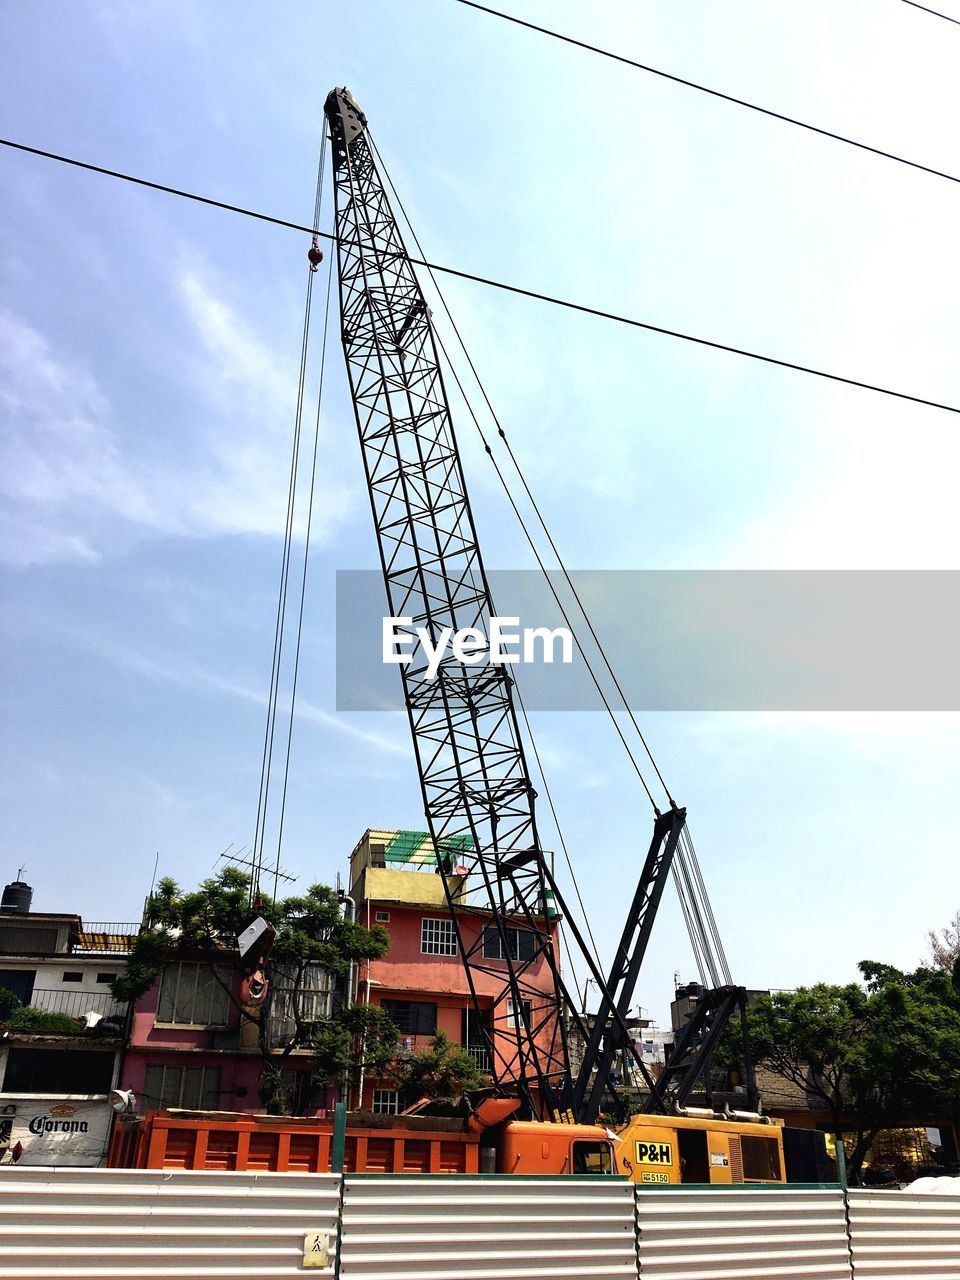 sky, cloud - sky, low angle view, construction site, crane - construction machinery, built structure, construction, day, architecture, cable, outdoors, building exterior, no people, industry, tree, drilling rig, oil pump